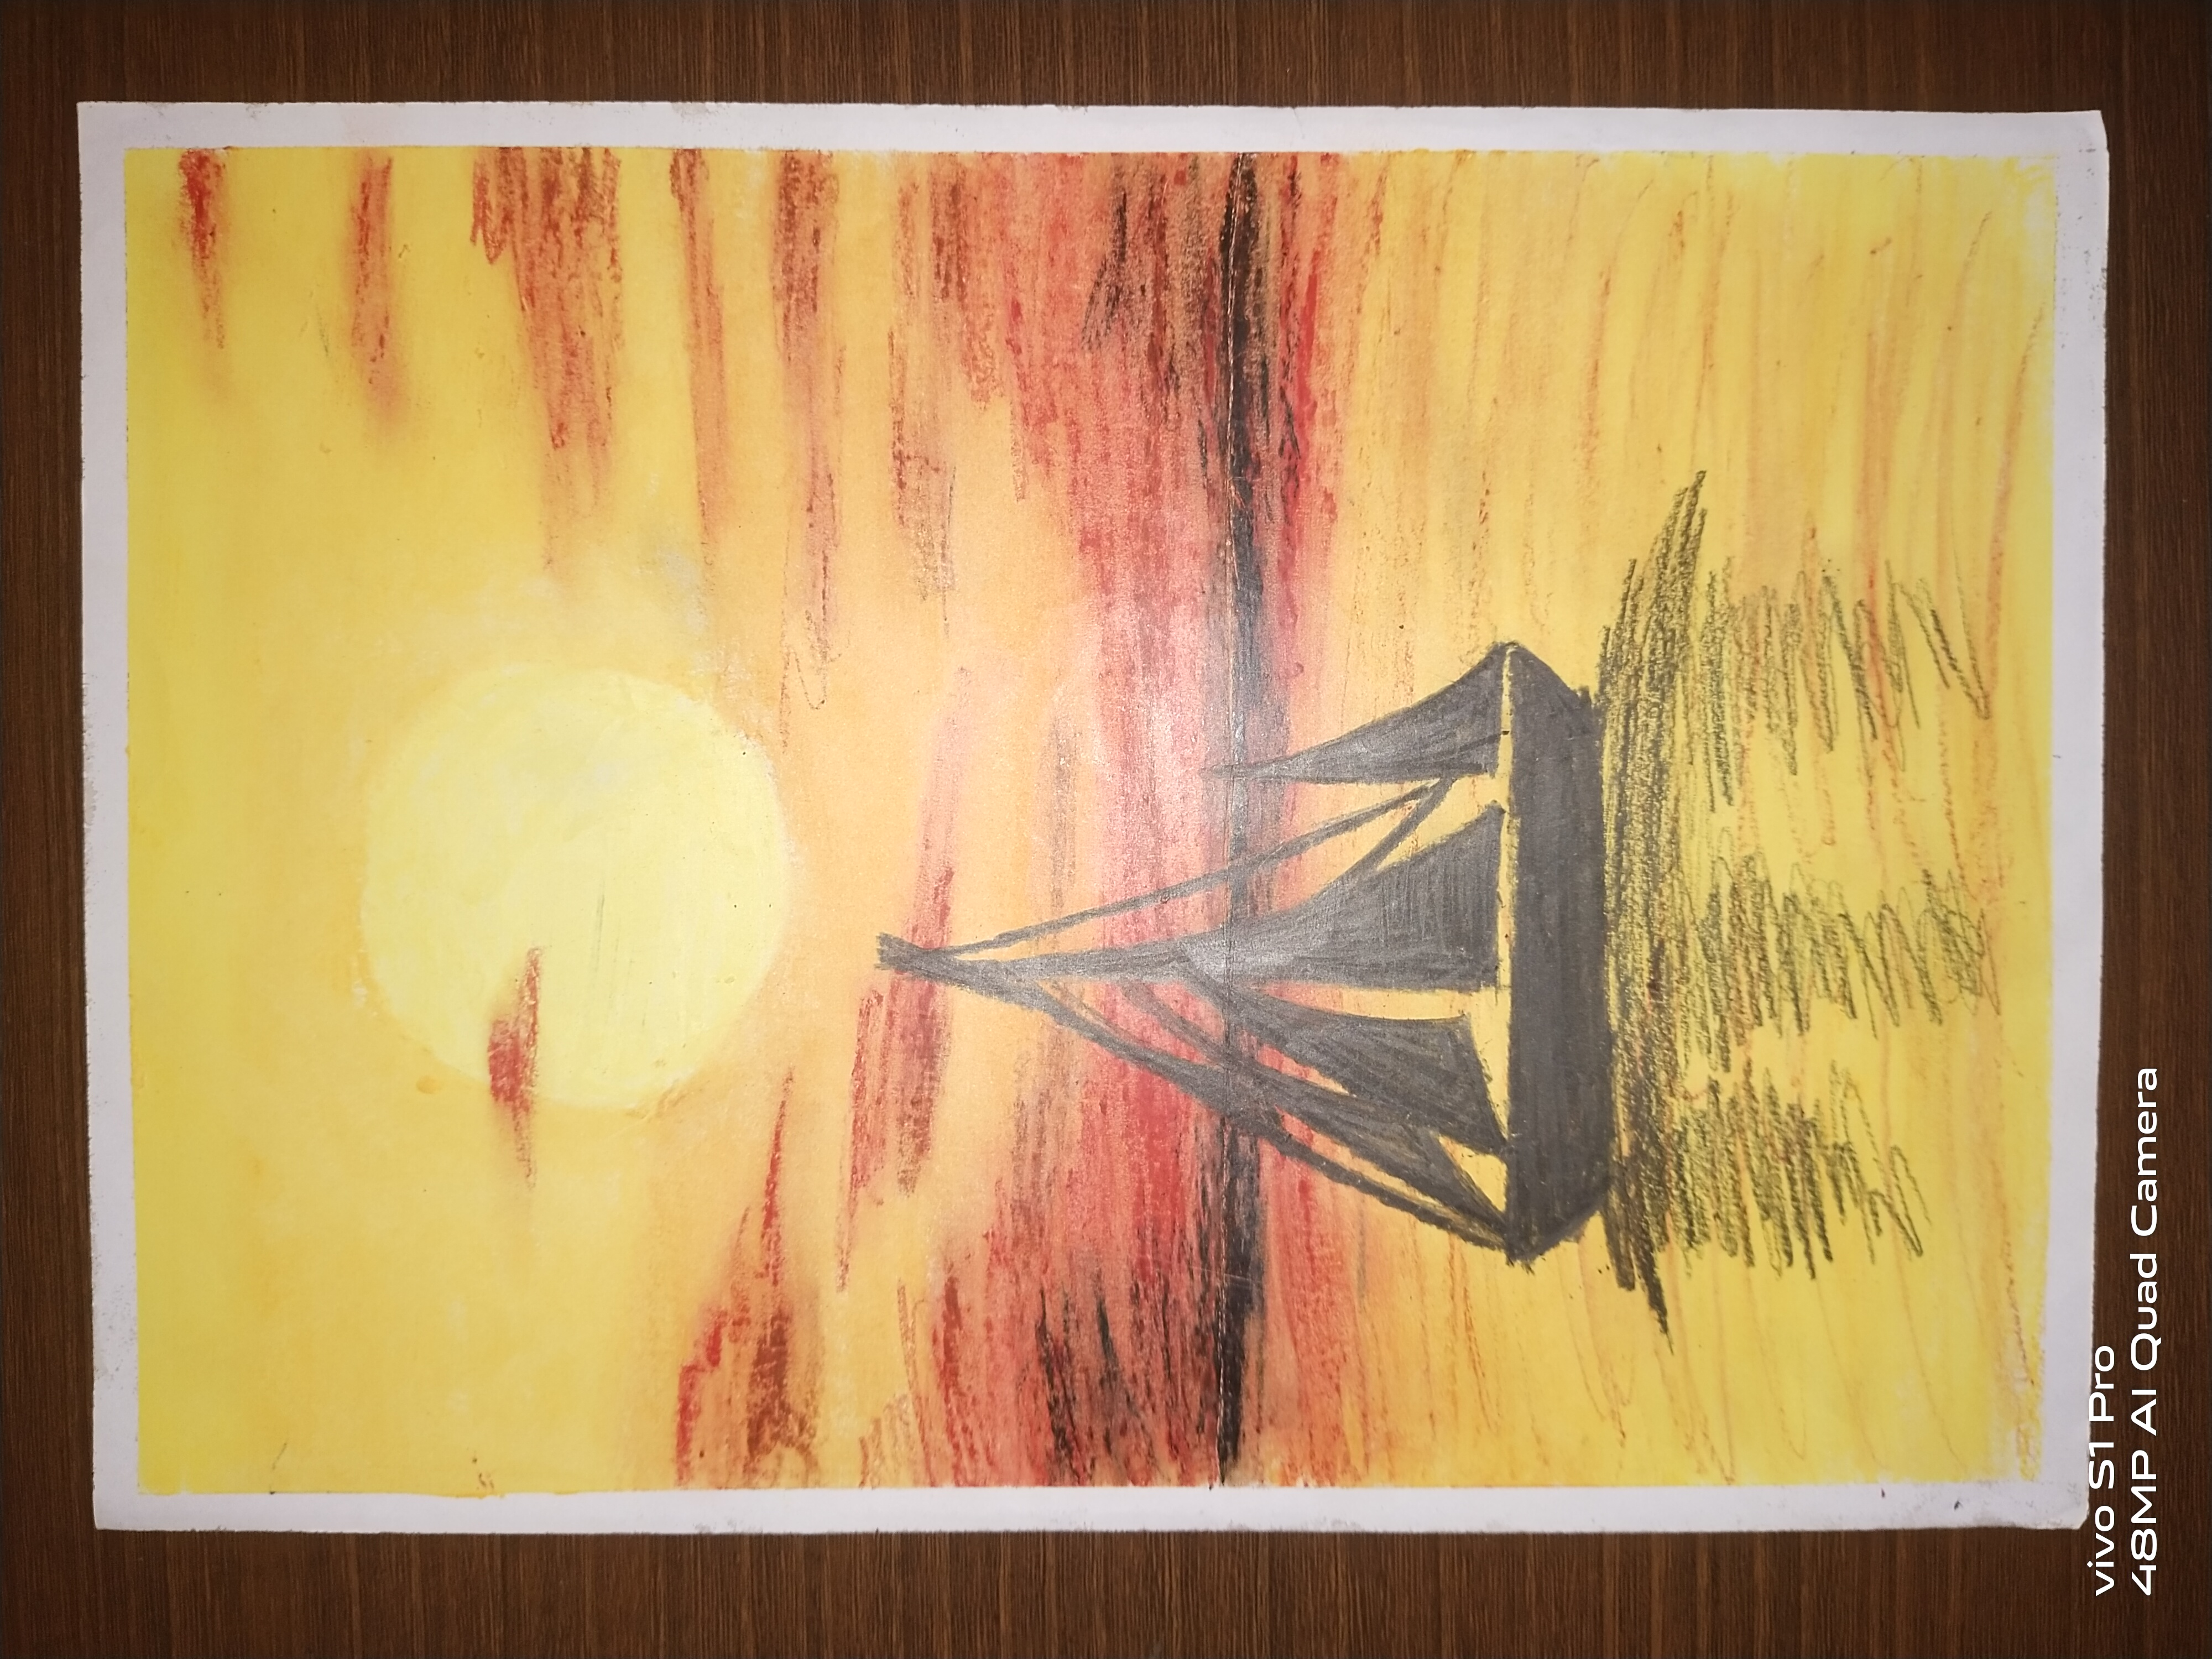 Charitharth's 'Boat On Sea' Painting